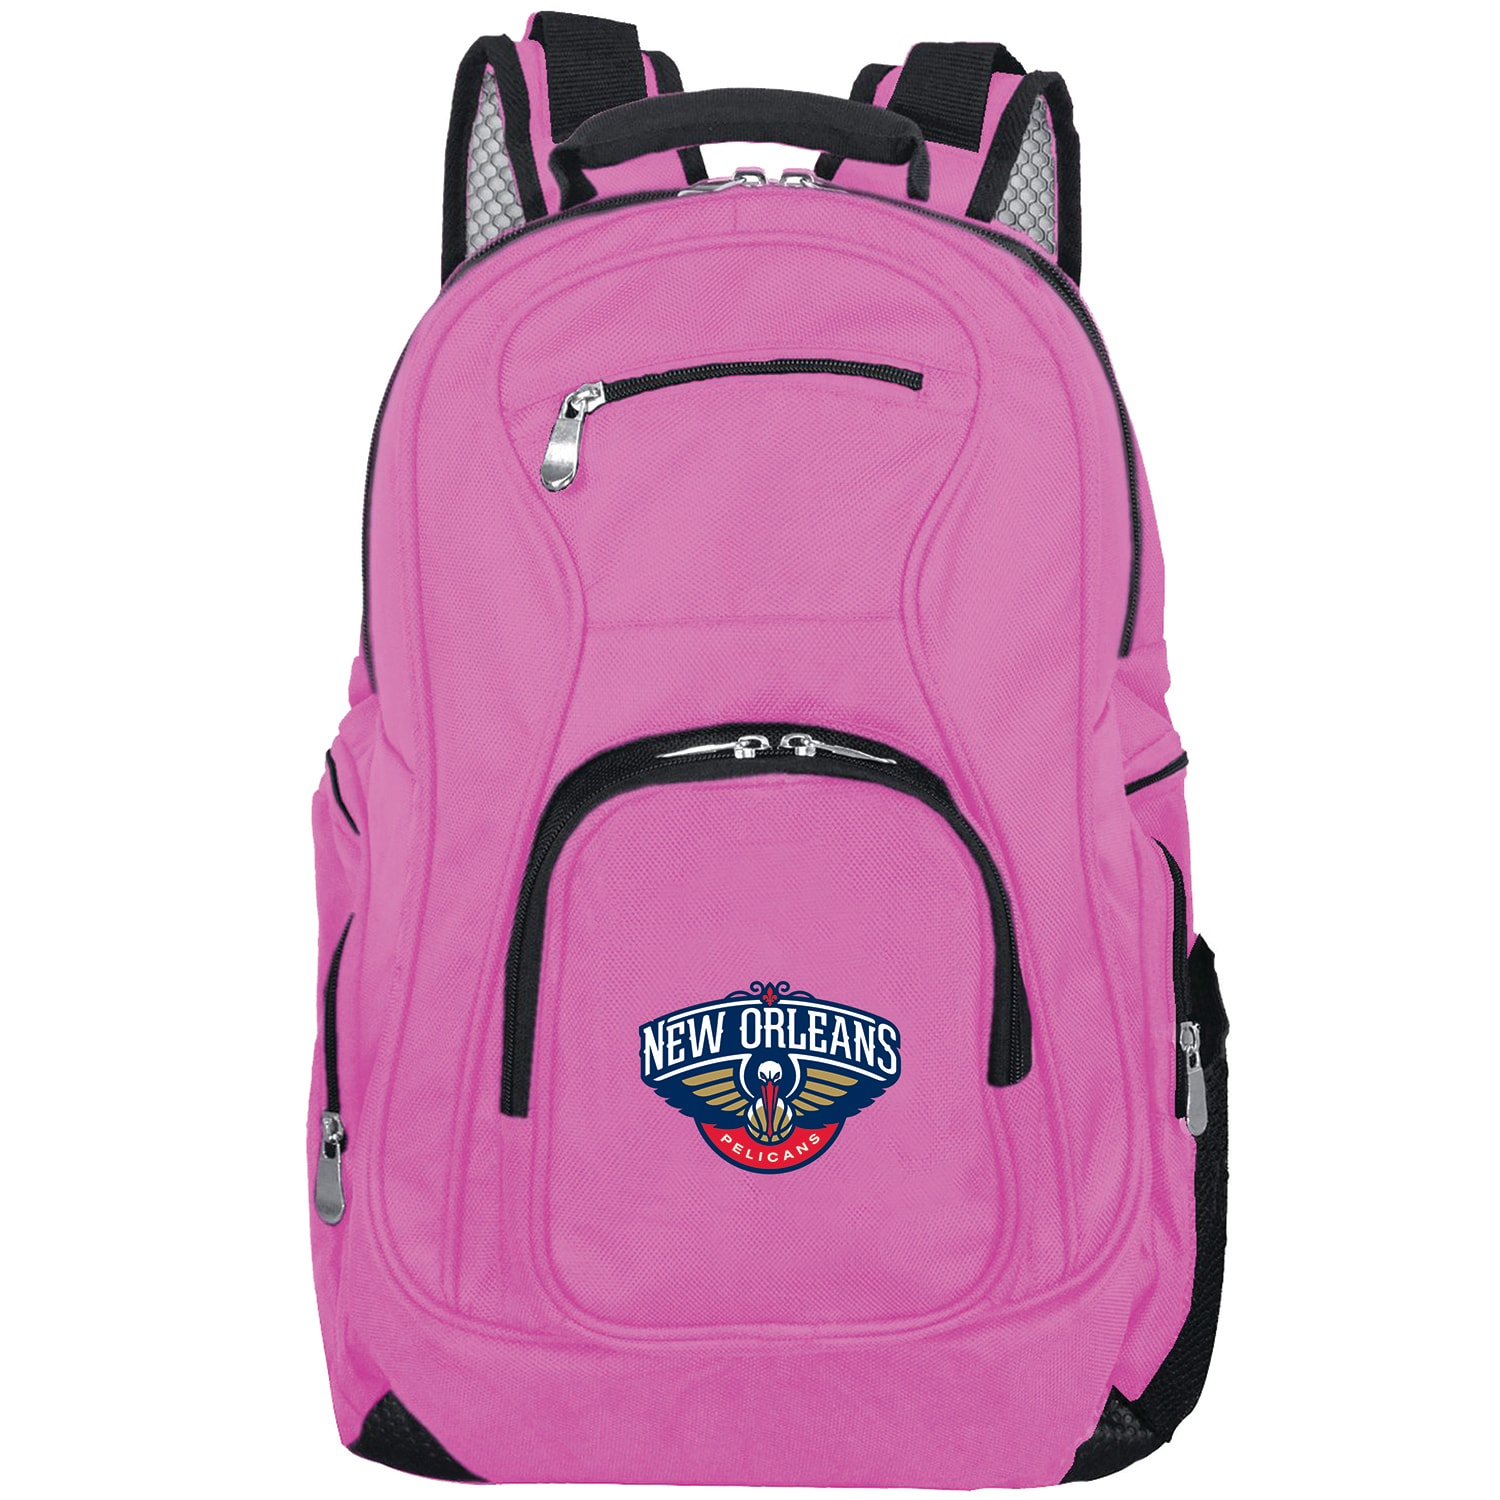 New Orleans Pelicans Backpack Laptop - Pink